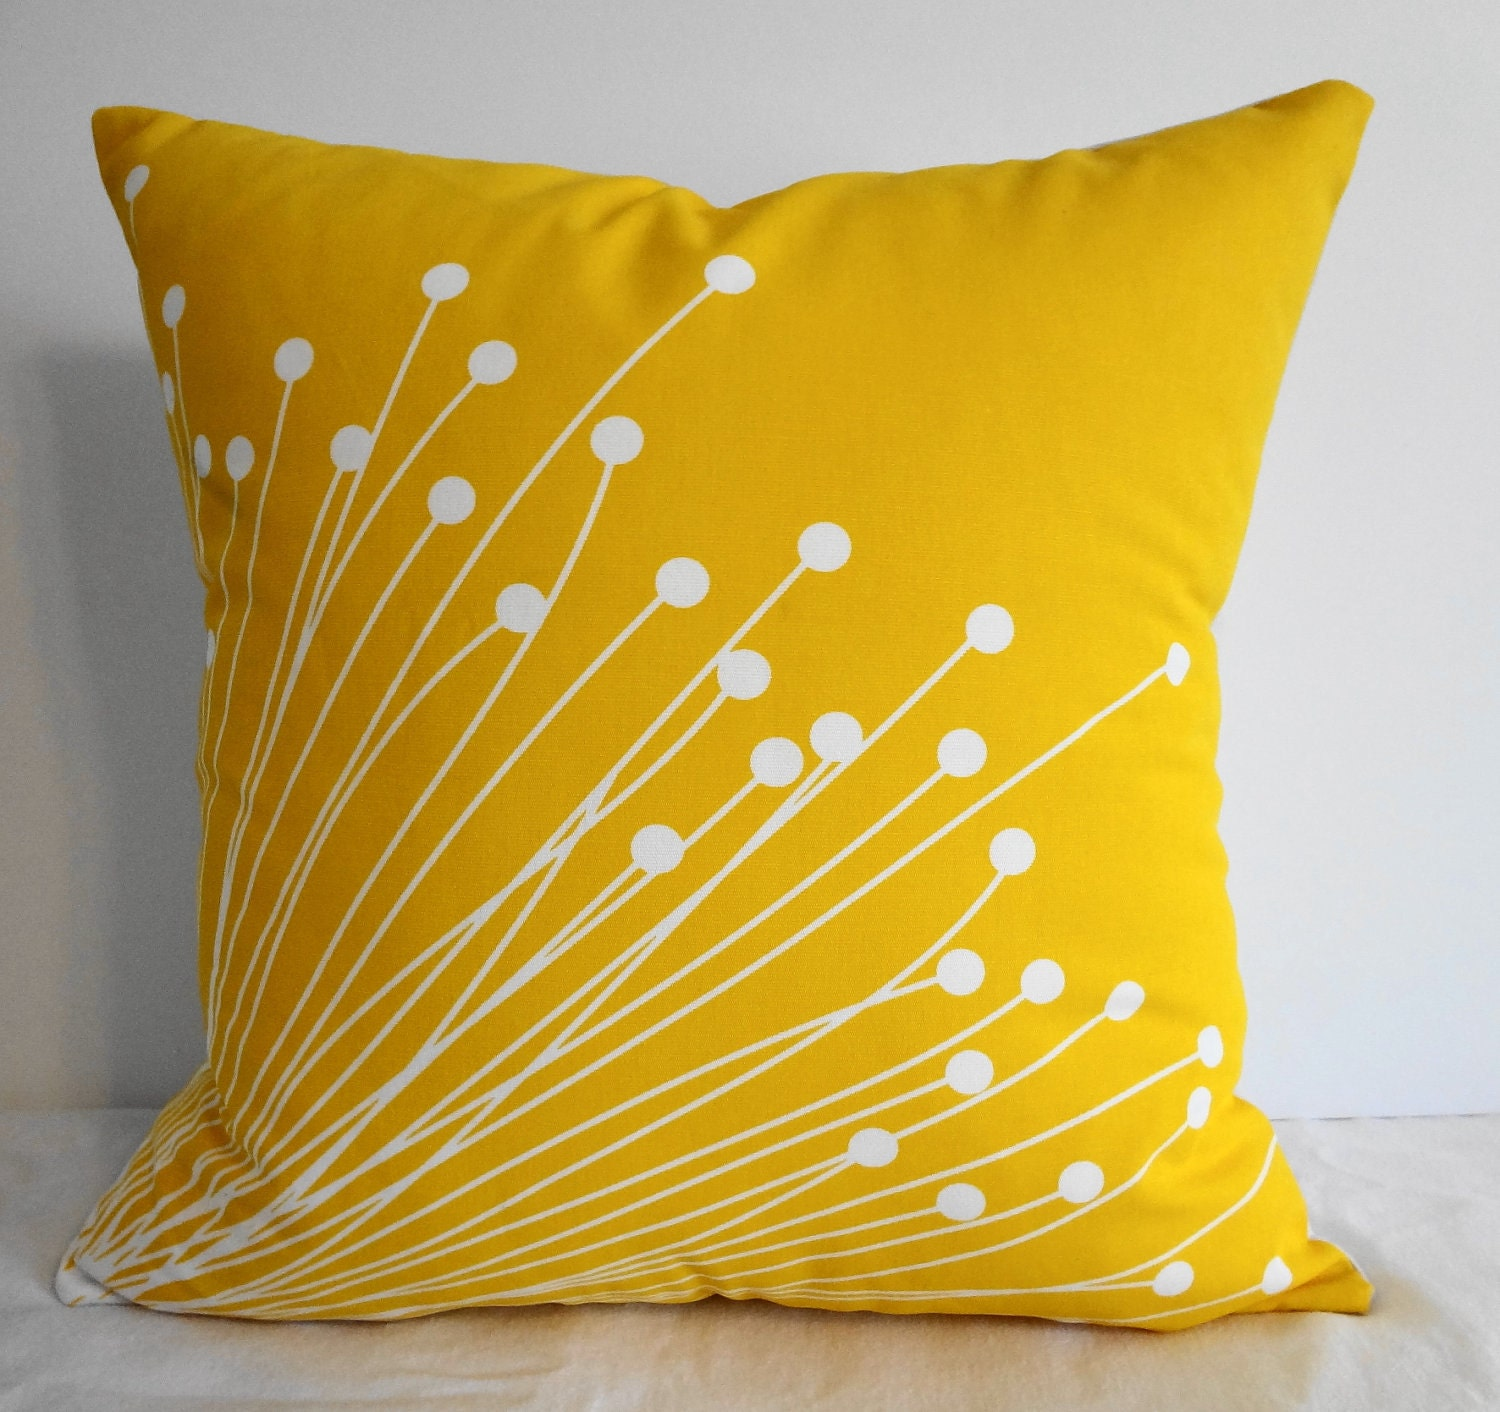 Starburst Yellow Pillow Covers Decorative Throw Pillow : ilfullxfull299907176 from www.etsy.com size 1500 x 1412 jpeg 356kB